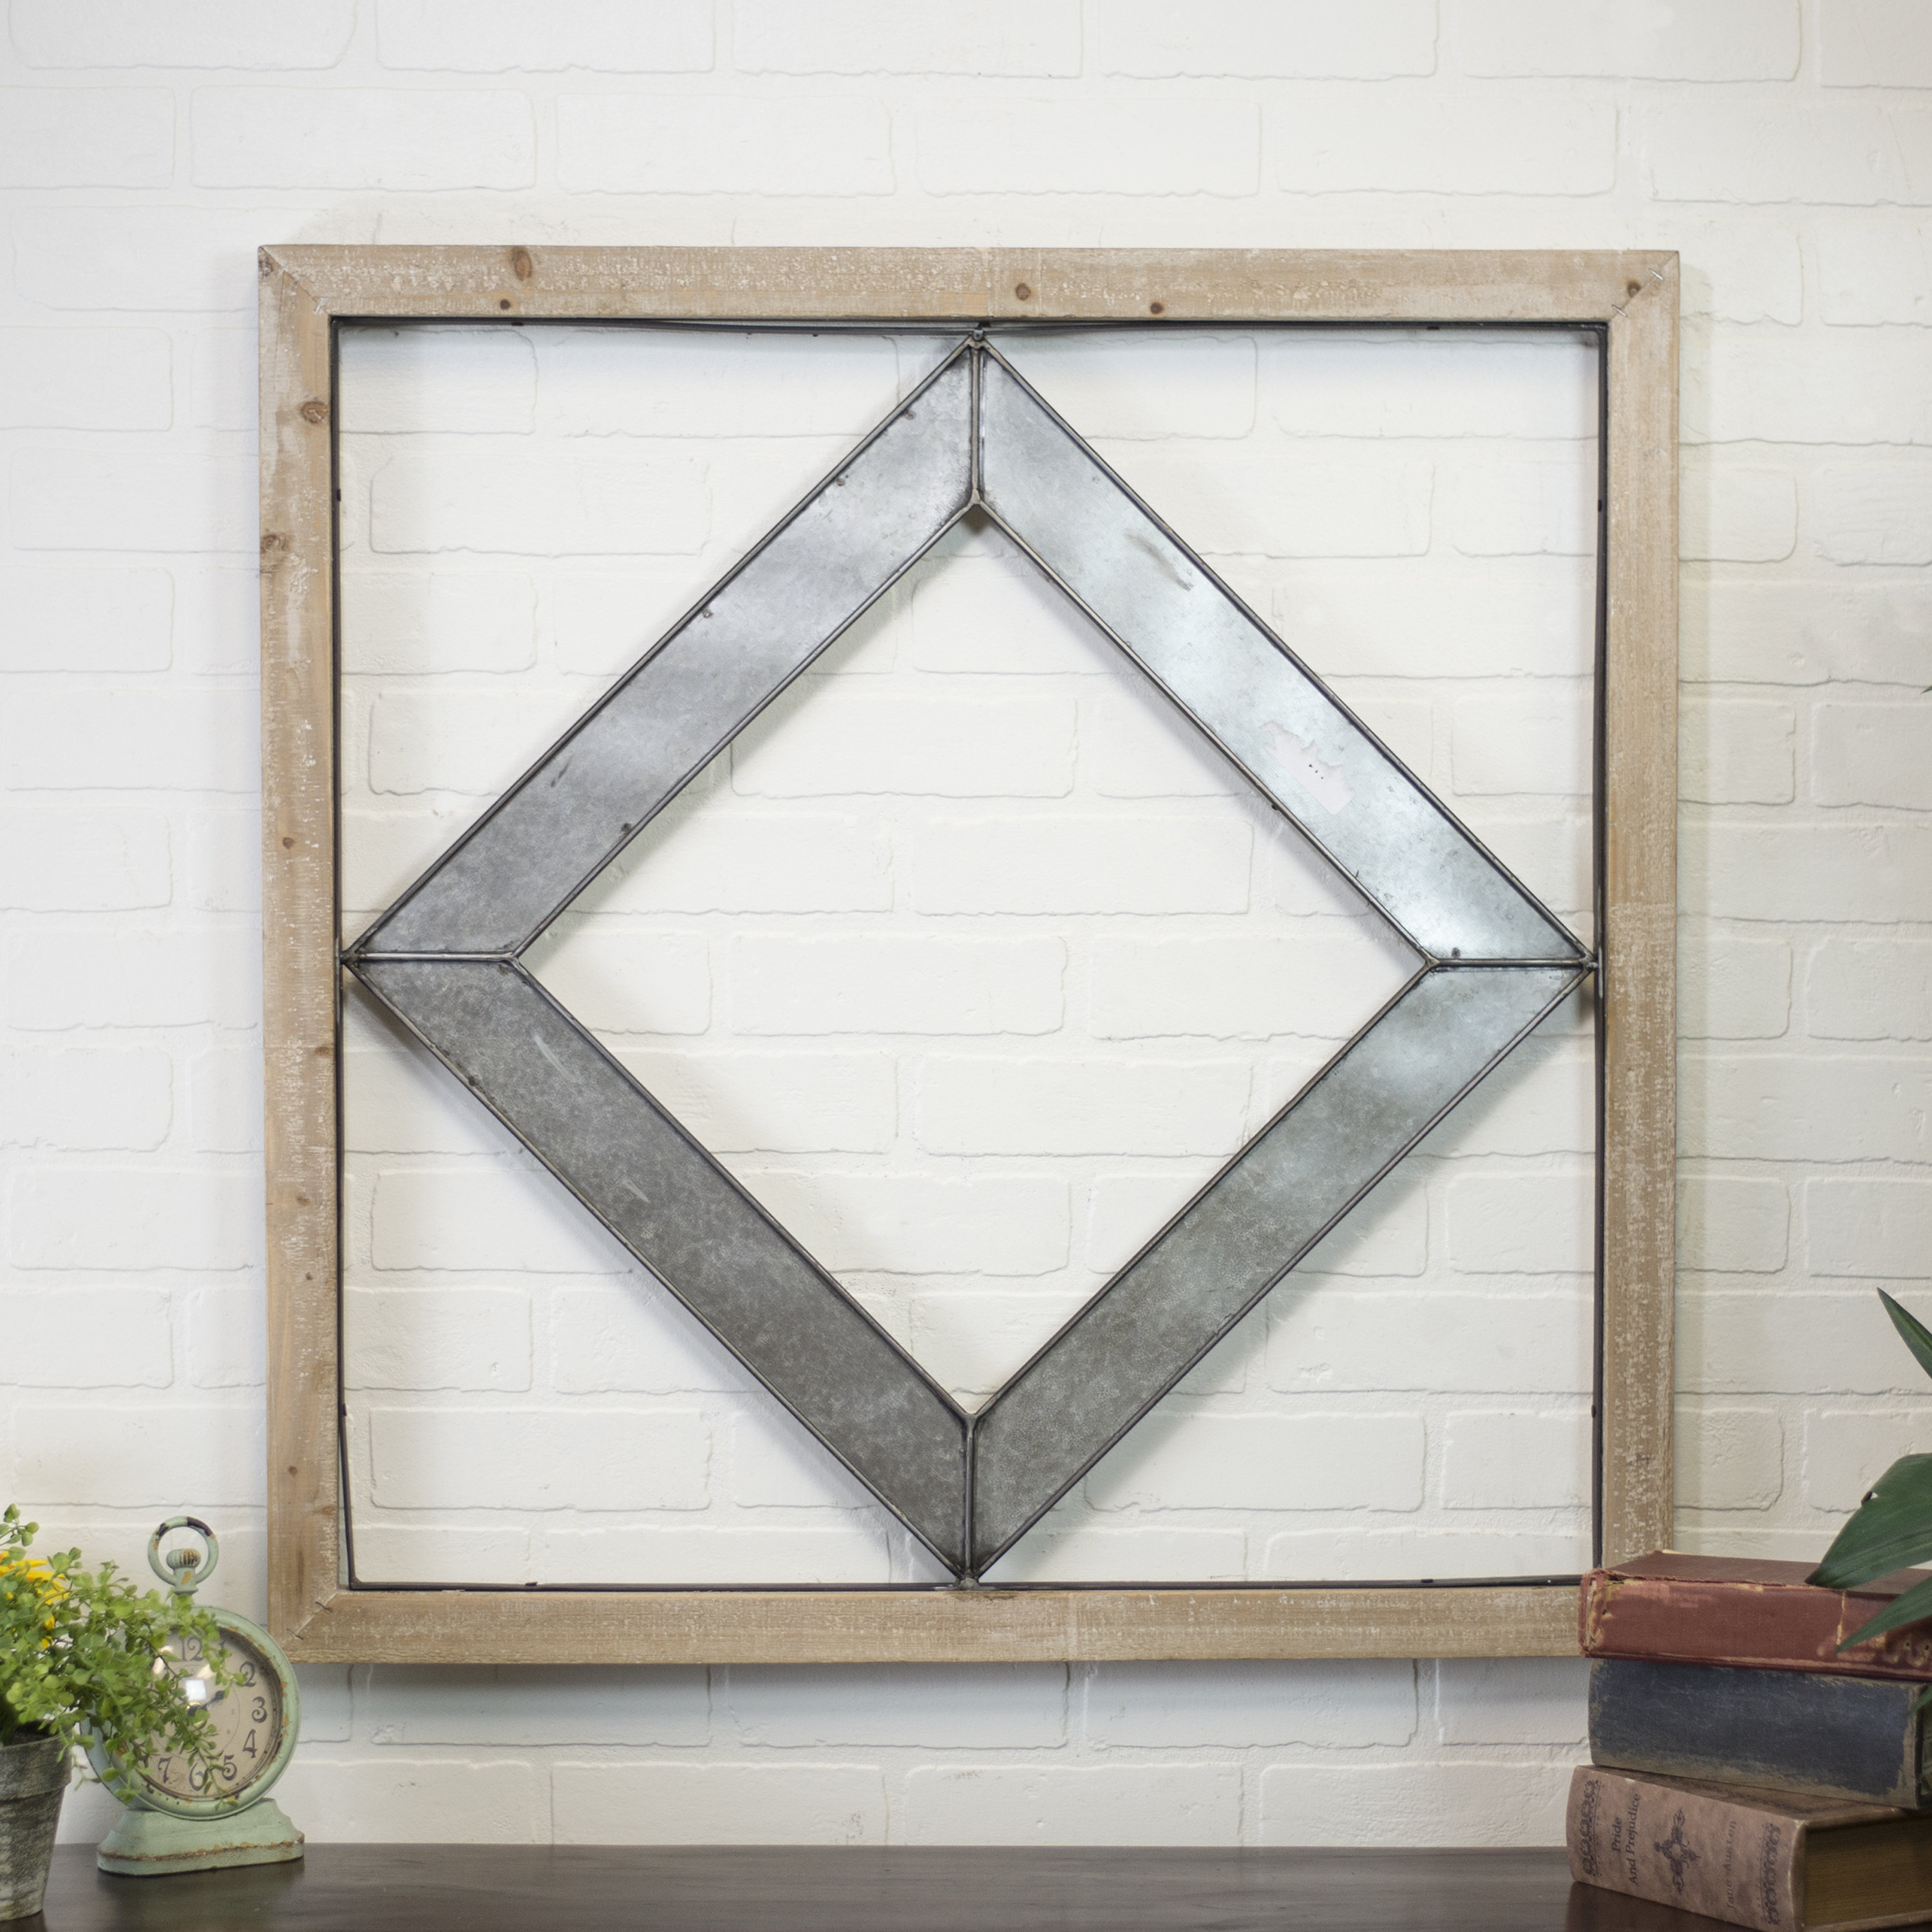 Industrial Wall Décor with regard to Large Modern Industrial Wall Decor (Image 10 of 30)